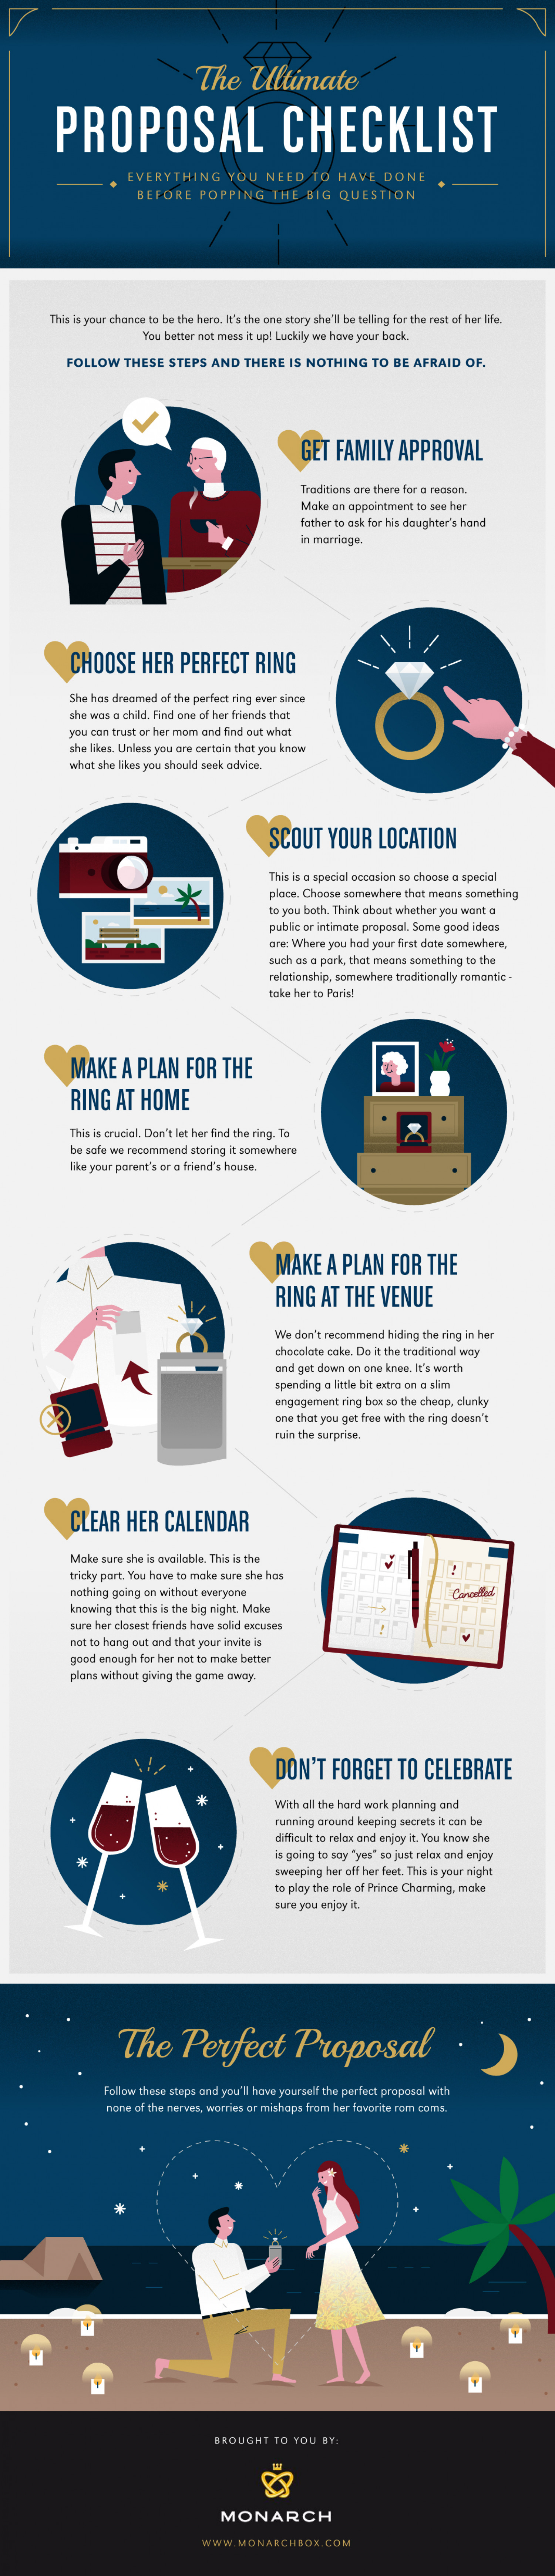 The Ultimate Proposal Checklist Infographic